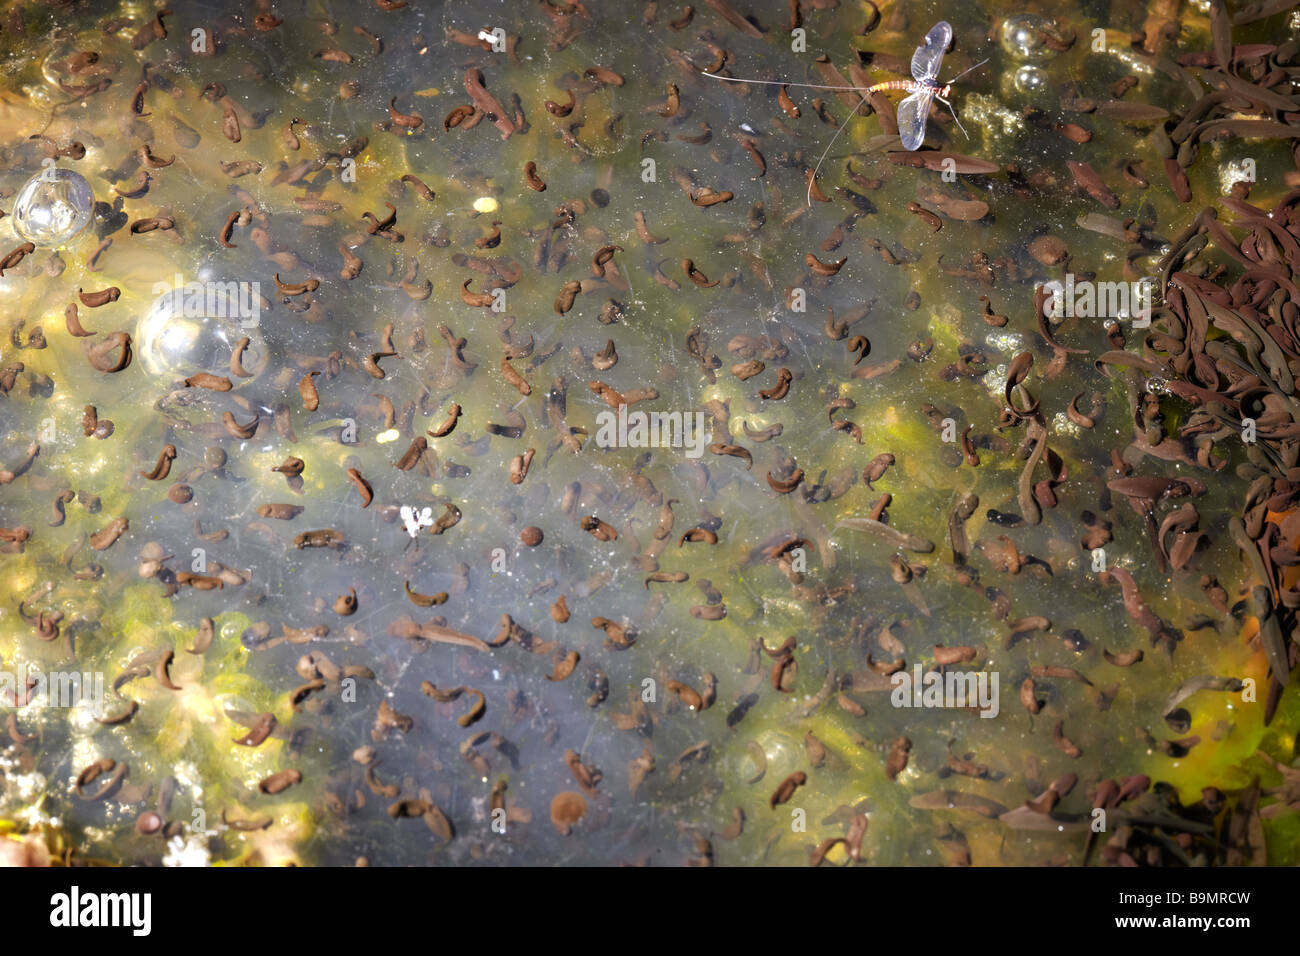 Frogspawn of Common Frog (Rana temporaria) in Garden Pond, in a Garden in Wales, UK - Stock Image